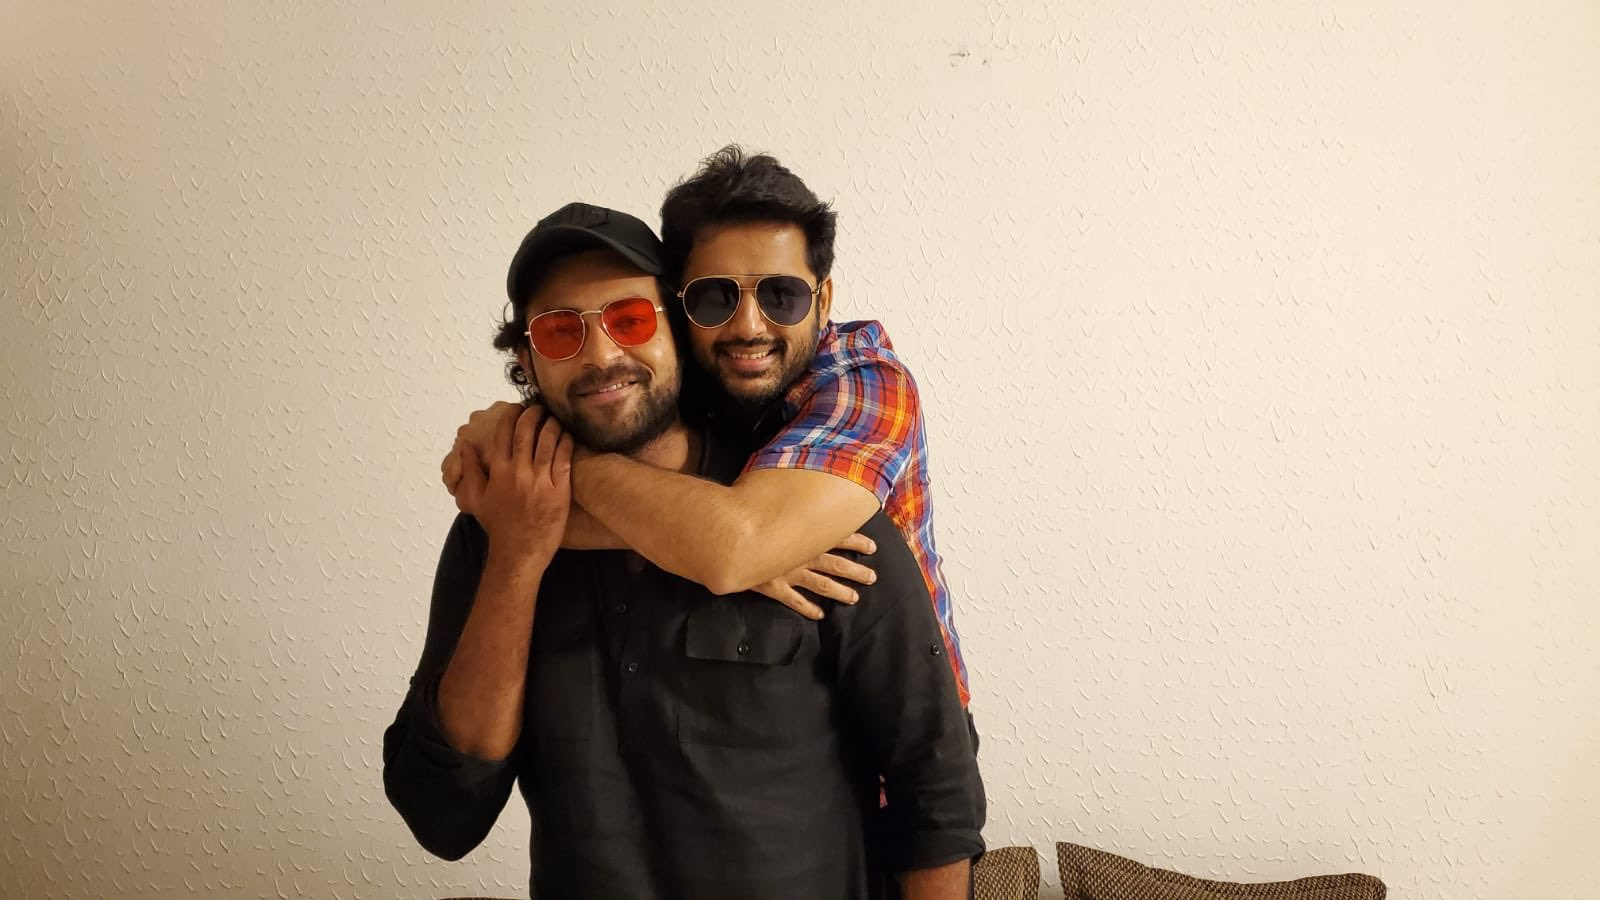 Nithiin On Twitter With Mr Gaddhala Konda Ganesh Really Enjoyed Being Part Of Valmiki It Was So Much Fun I Wish You All The Good Luck For The Release Yours Bheeshma